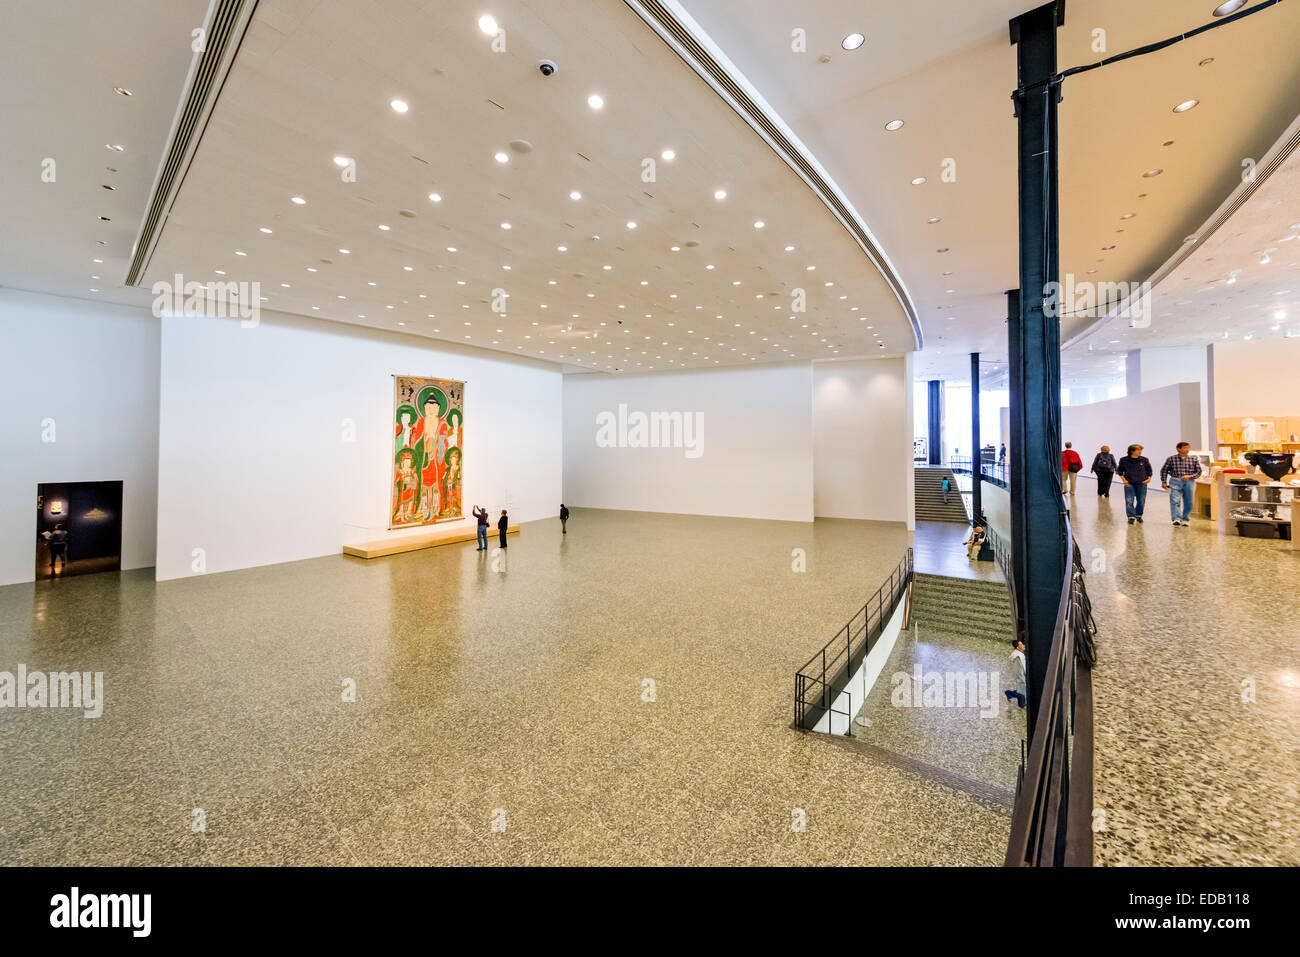 Interior of the Caroline Wiess Law Building at the Museum of Fine Arts, Houston, Texas, USA Stock Photo